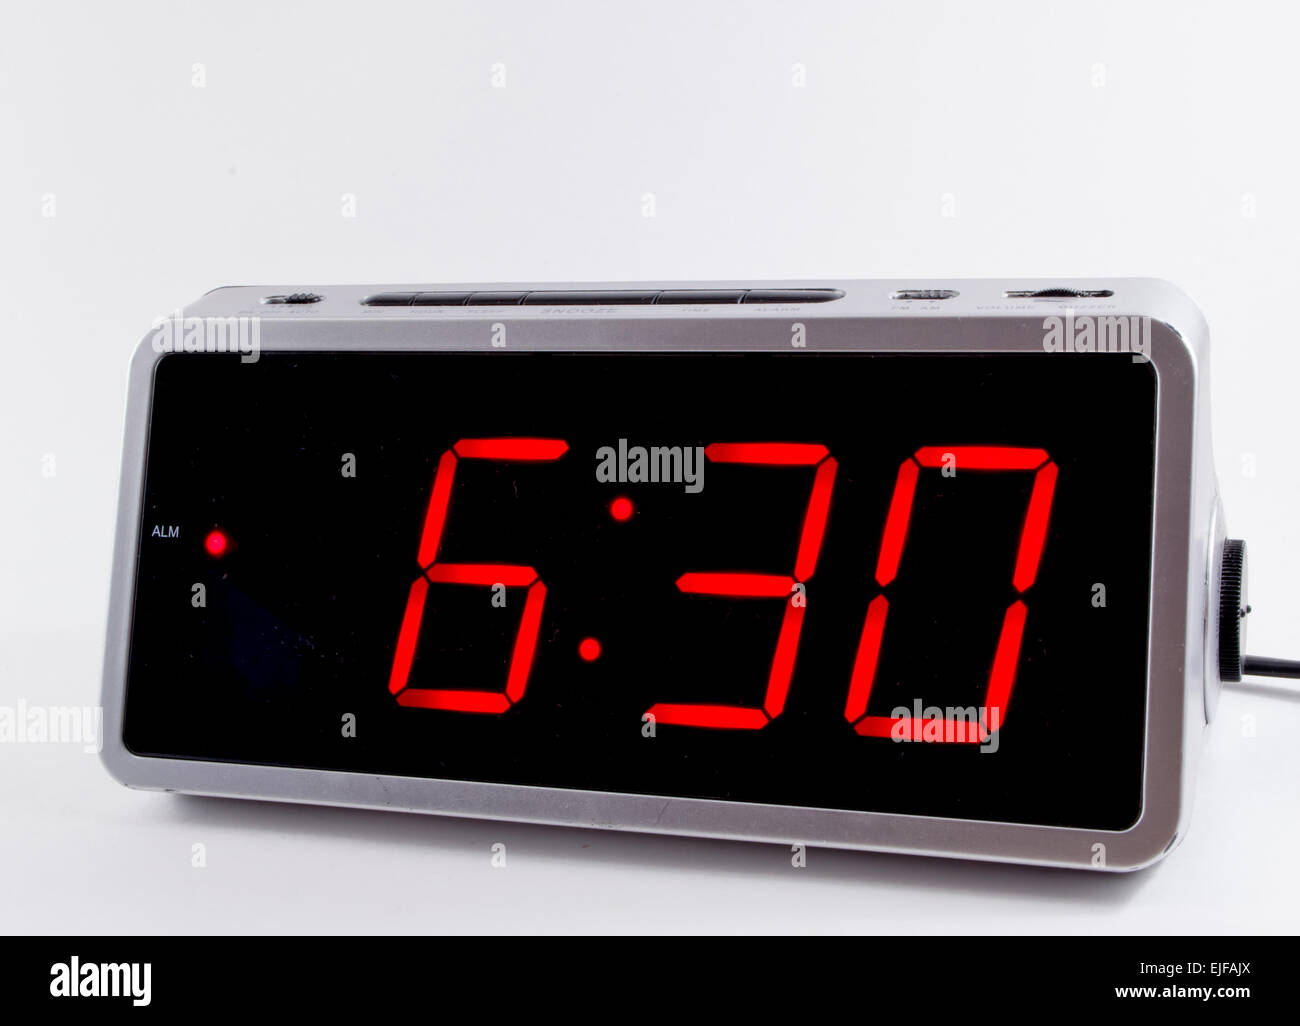 ... looking silver digital alarm clock at six thirty 6 30am in red lights